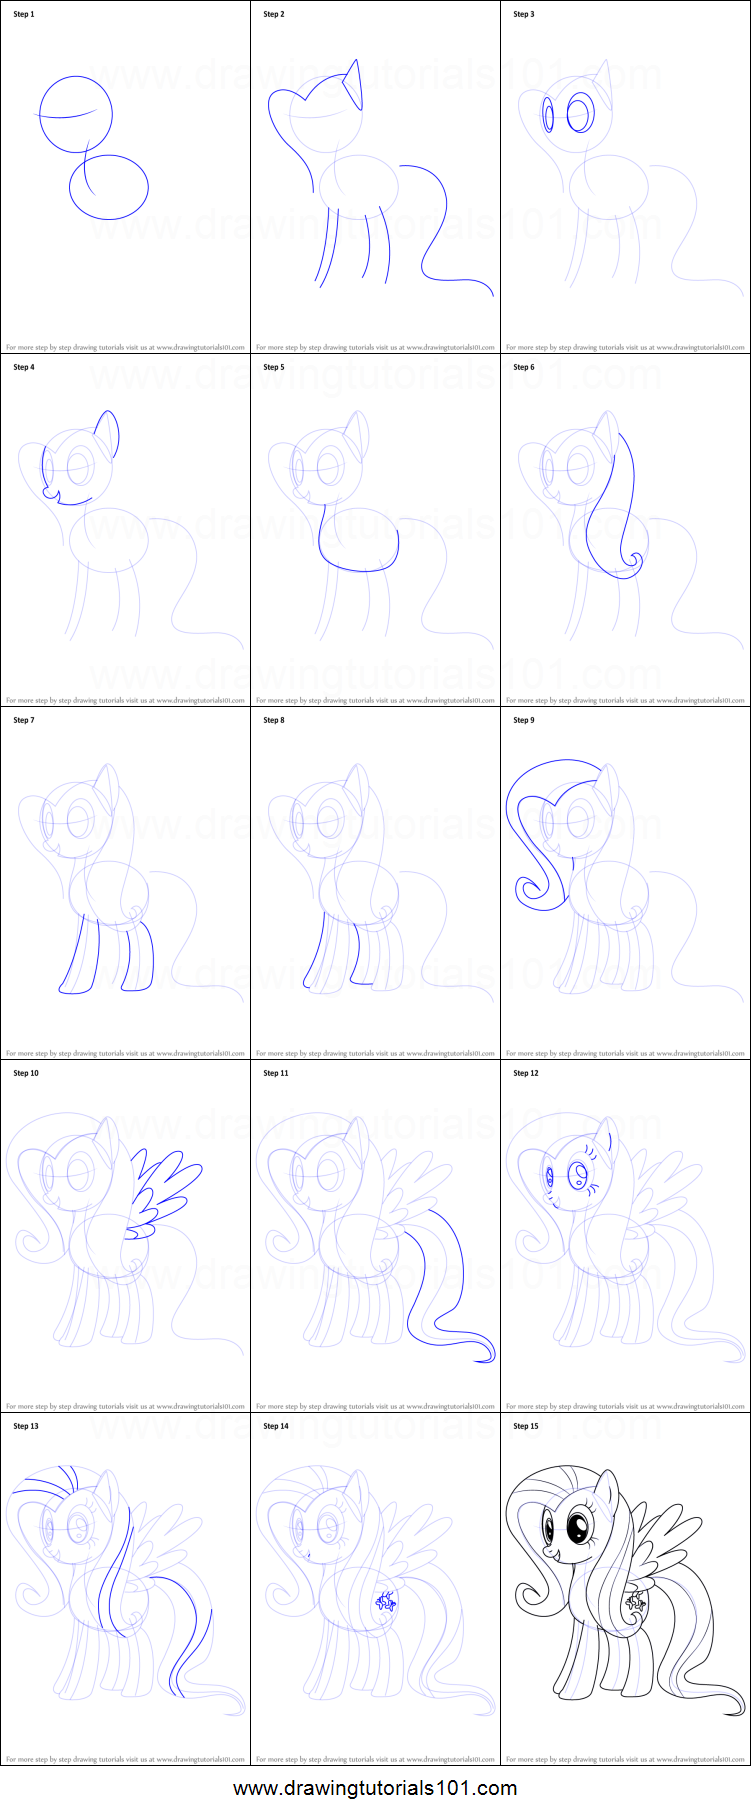 how to draw fluttershy from my little pony friendship is magic printable step by step drawing sheet drawingtutorials101com